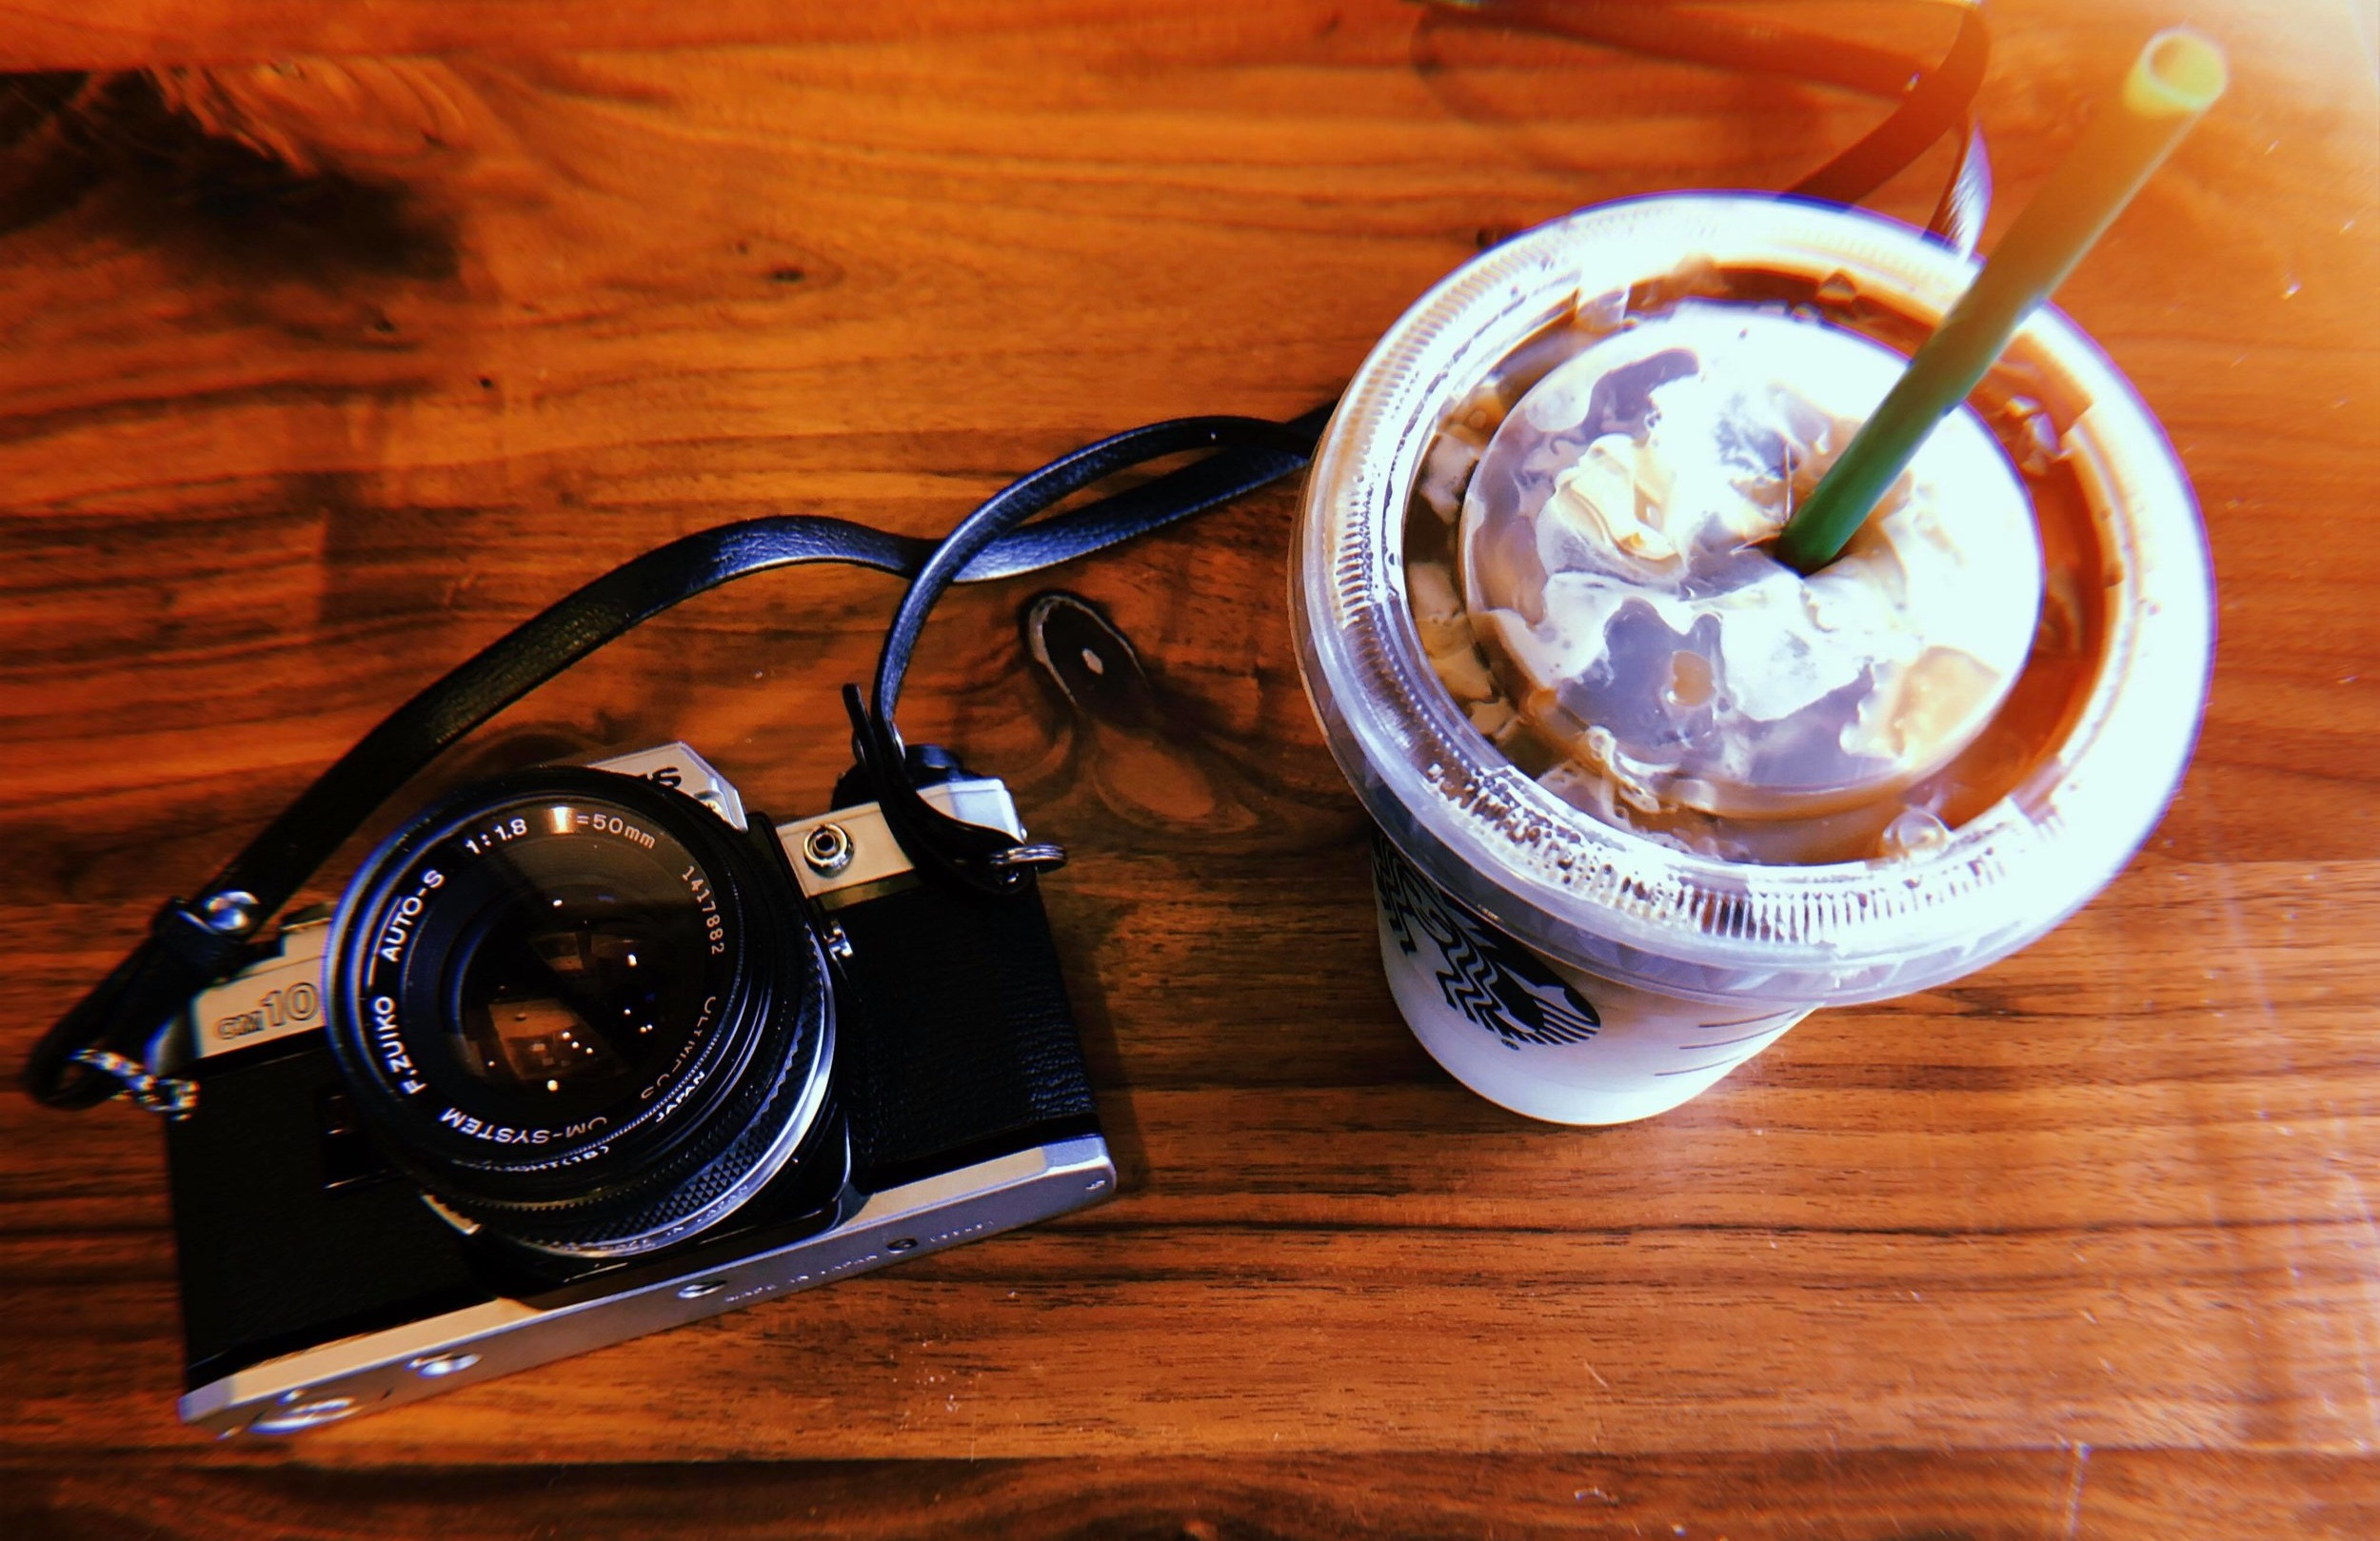 The Olympus OM-10. (Starbucks drink not included) iPhone photo.